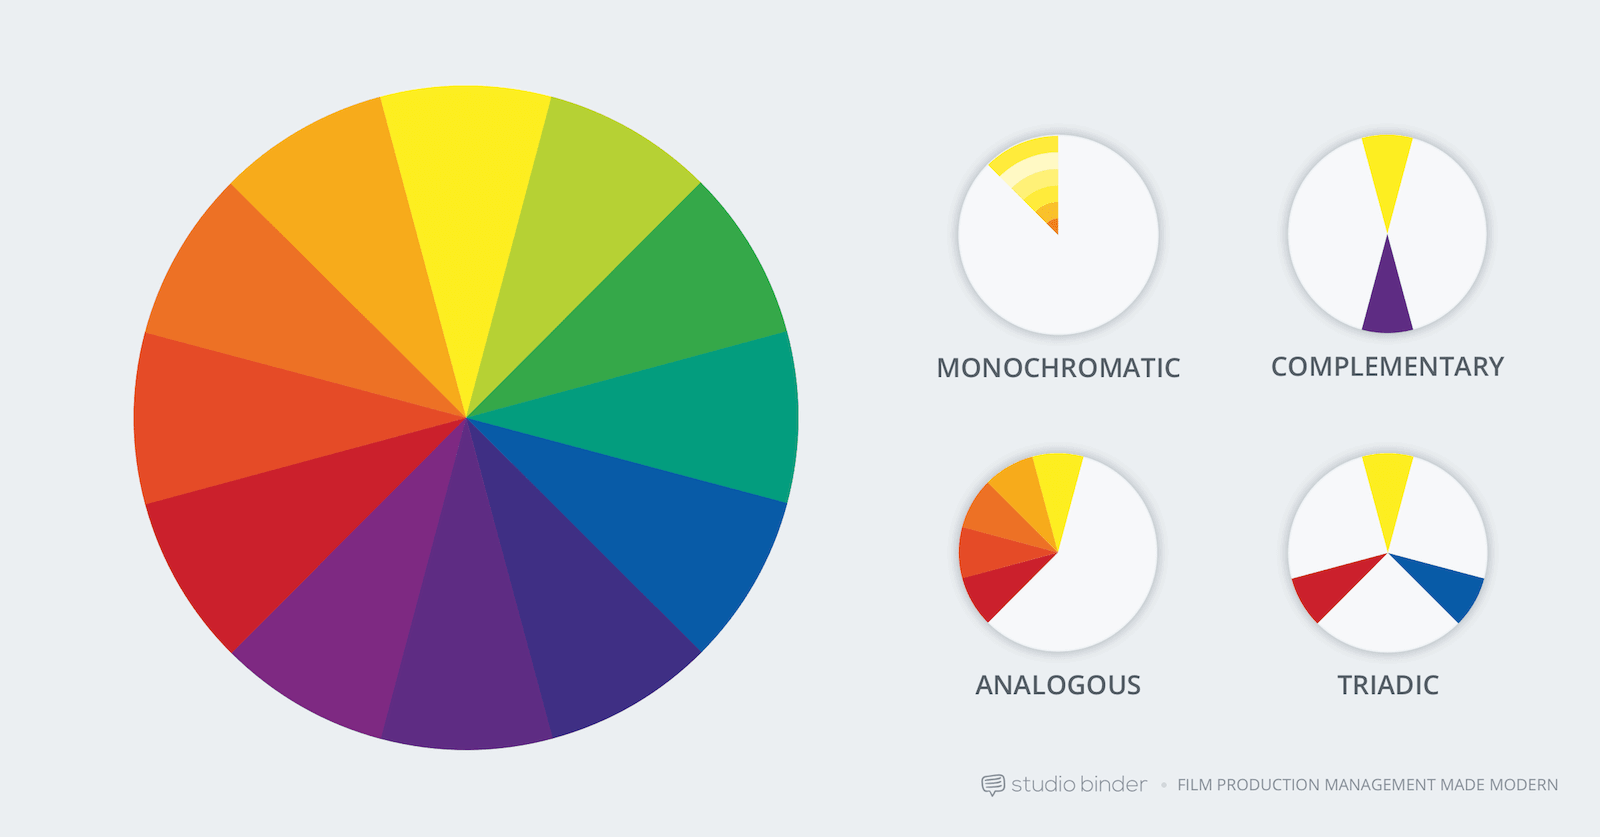 Color theory online games - 2 How To Use Color In Film Example Of Movie Color Palette And Schemes